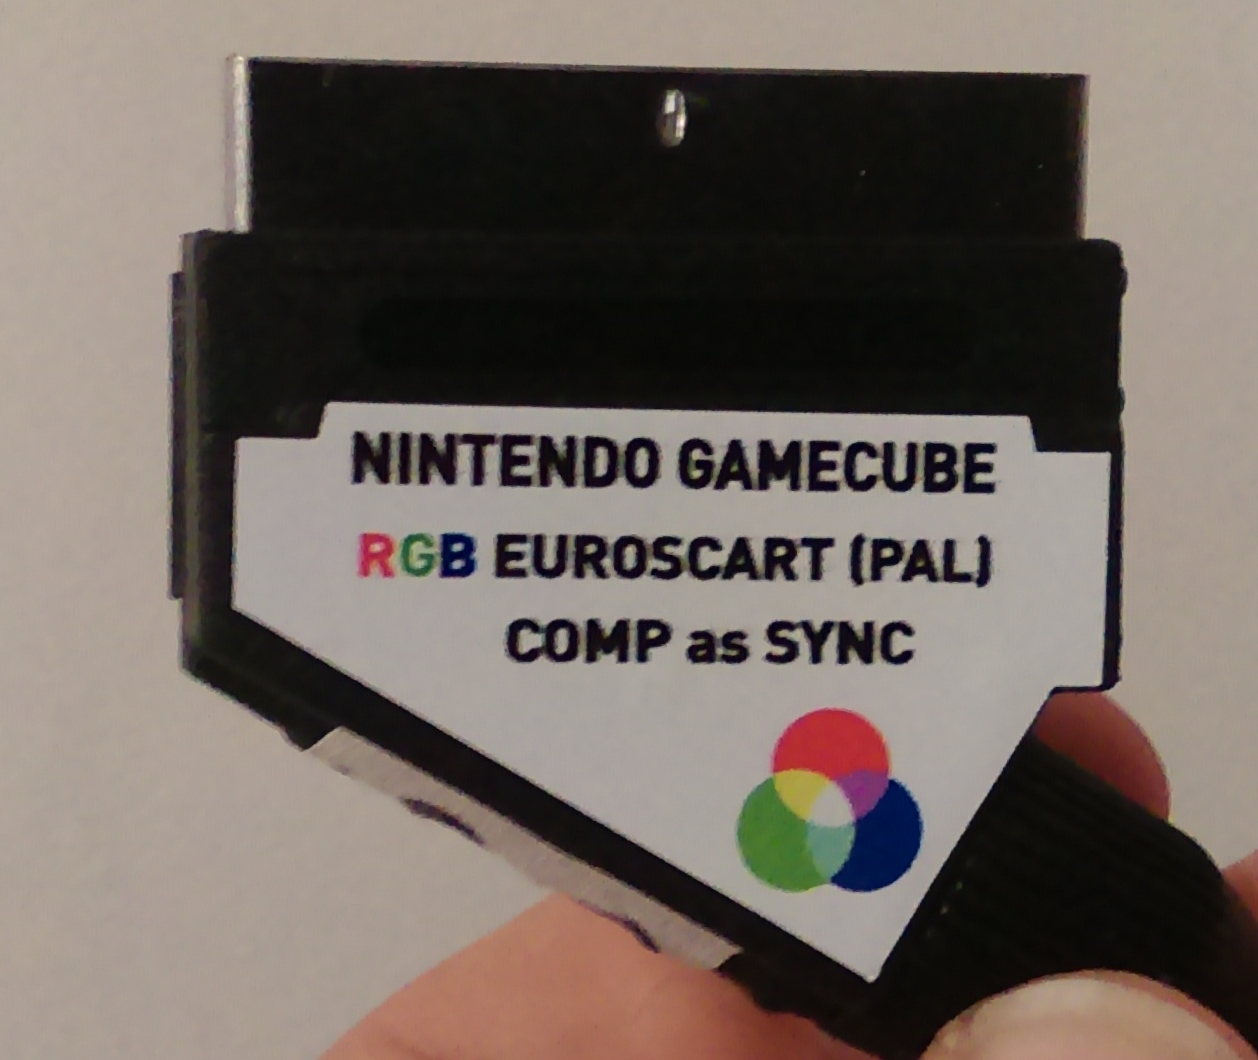 medium resolution of if you want to use a pal gamecube scart cable on a pal n64 then you